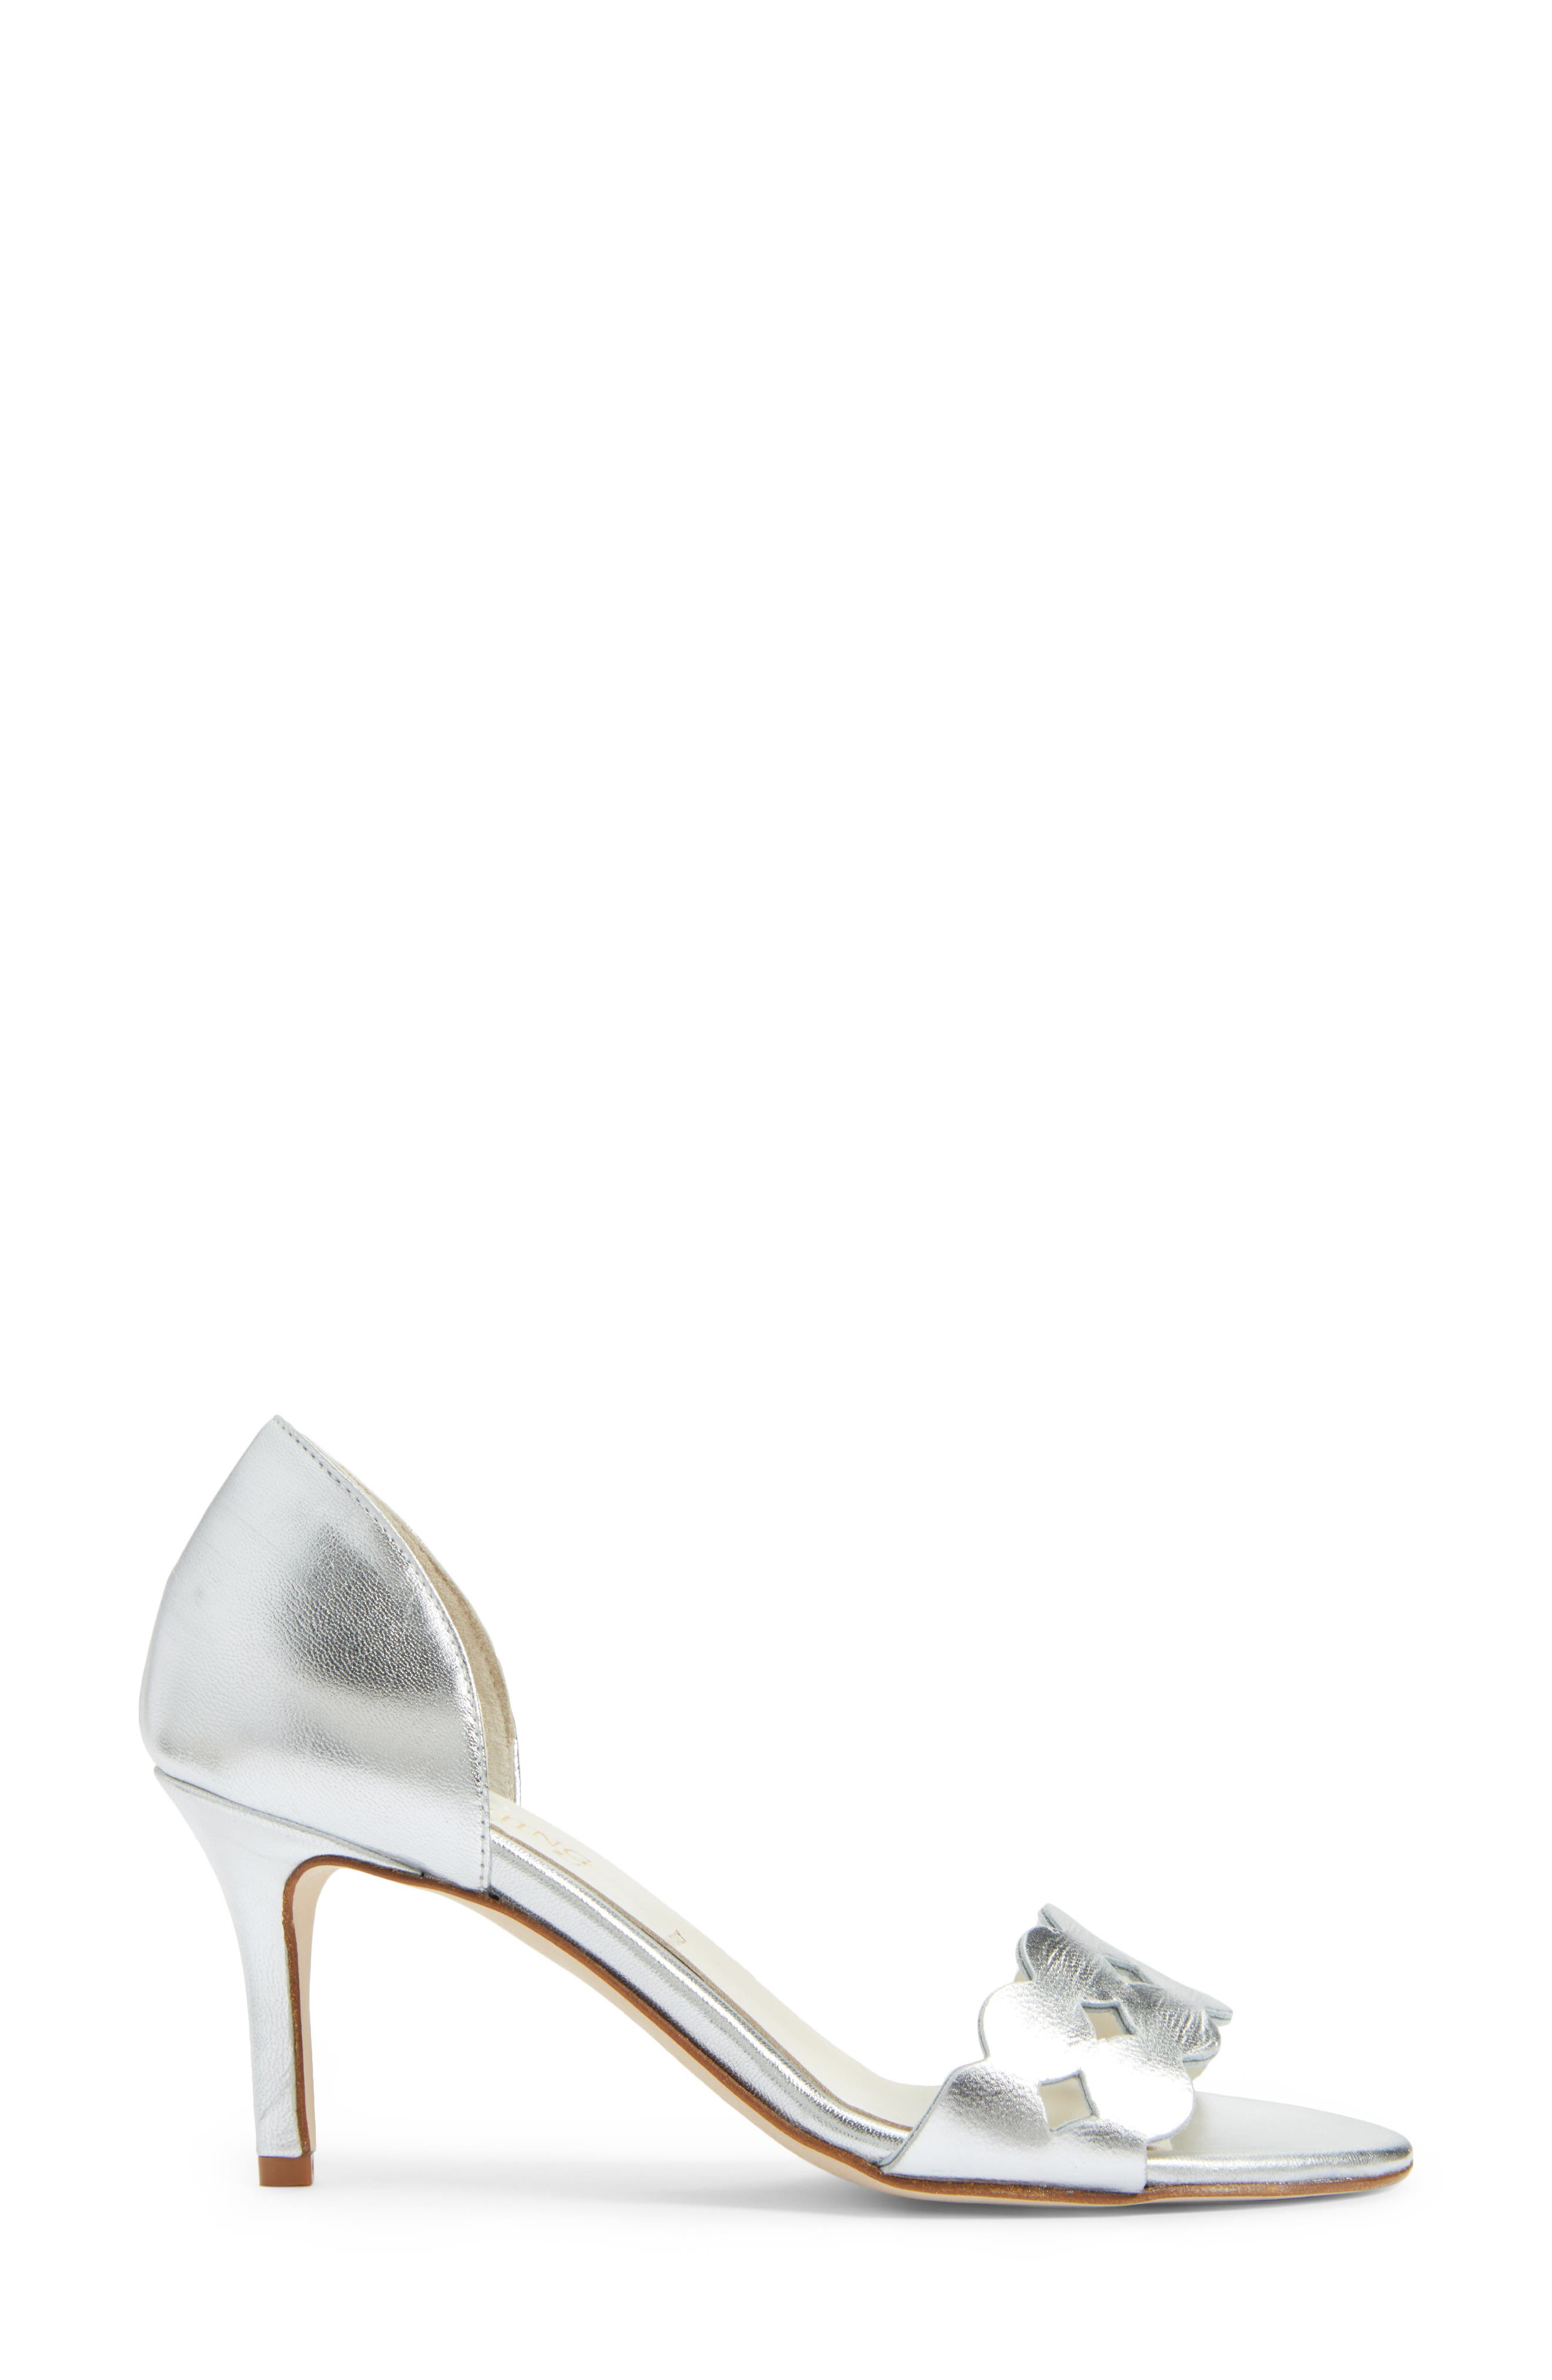 Catherine Cutout Sandal,                             Alternate thumbnail 3, color,                             SILVER METALLIC NAPPA